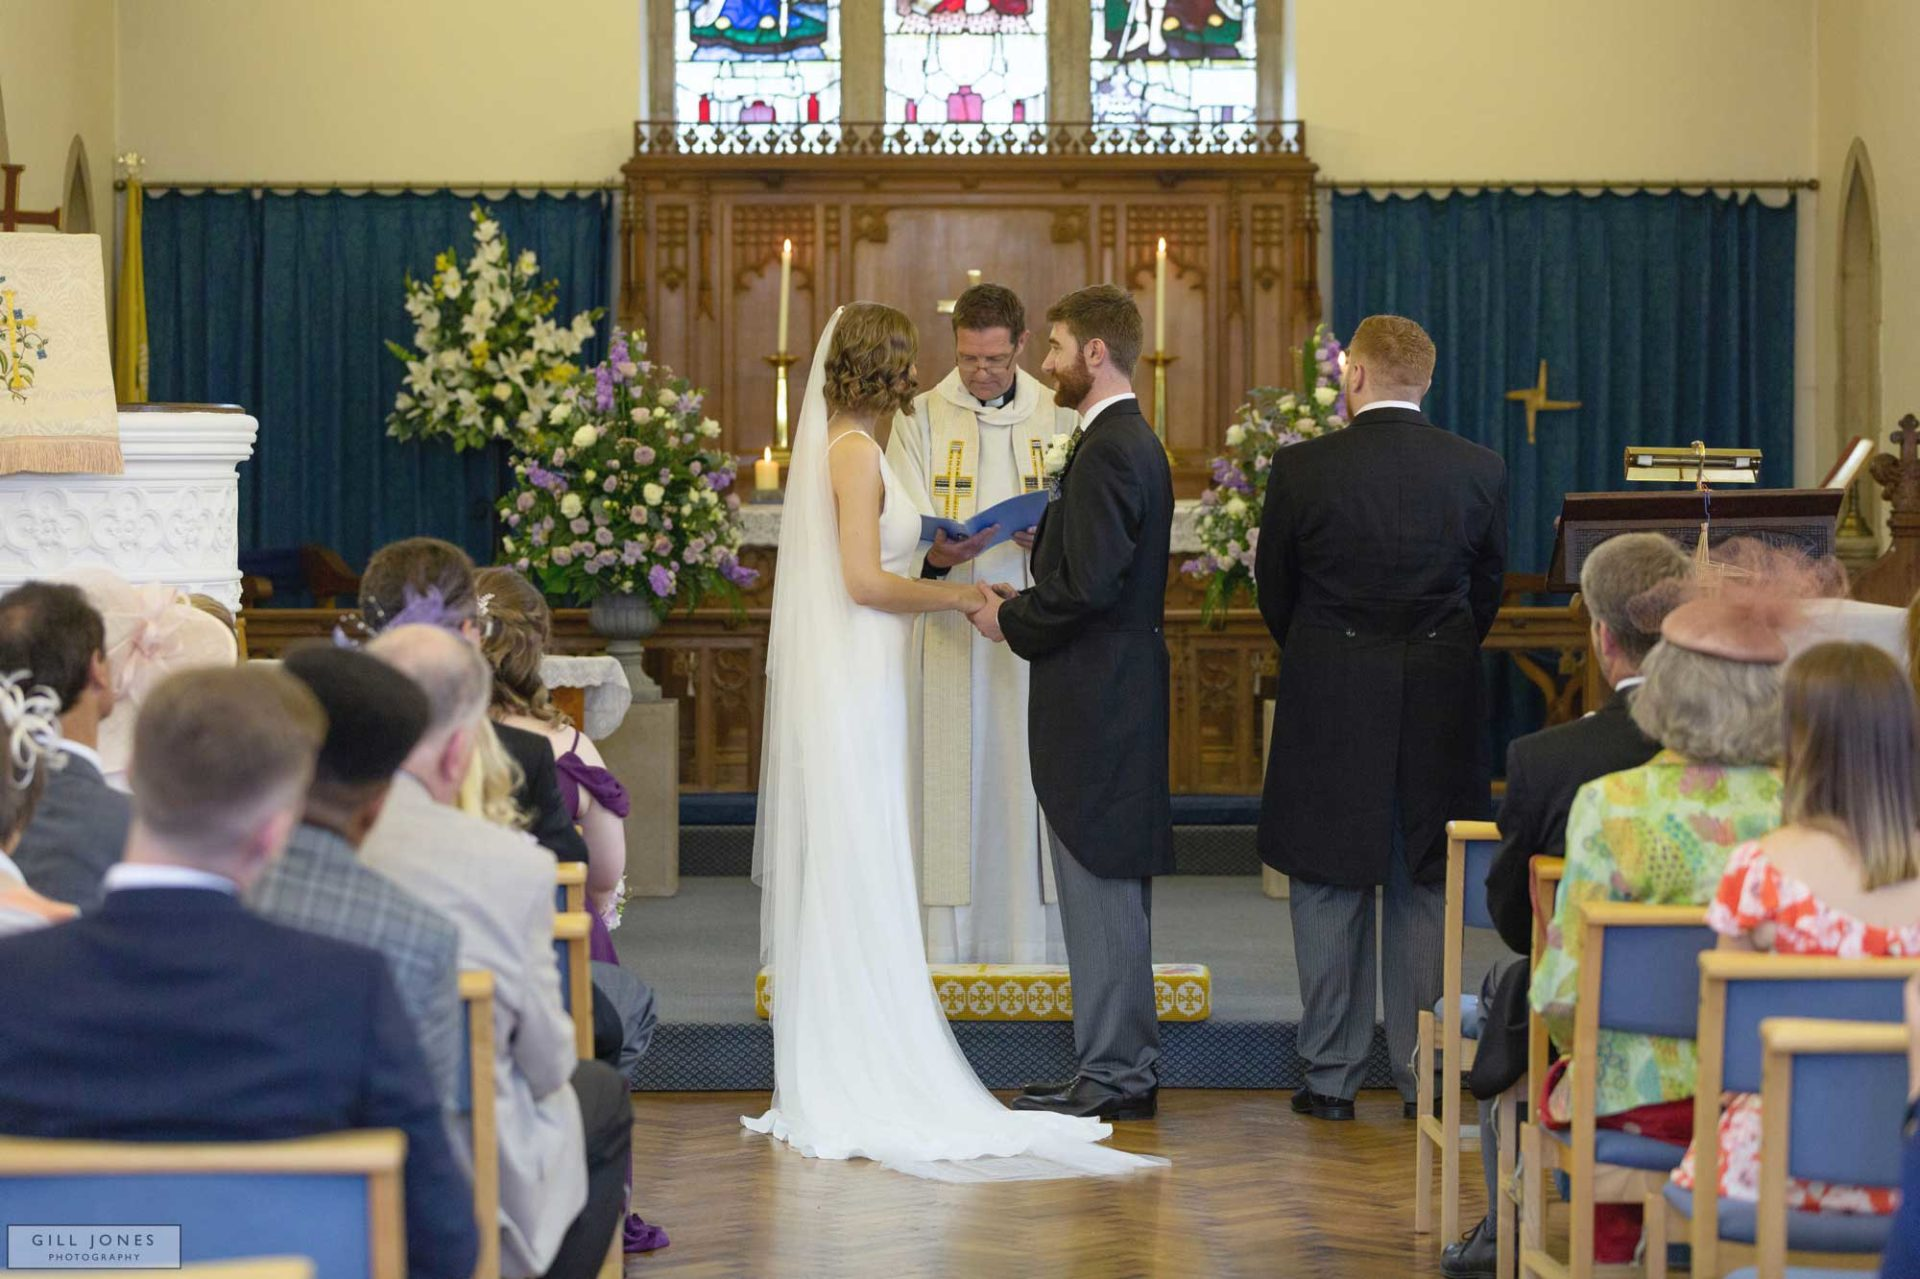 the bride and groom are repeating their vows to one another in St. Ffraids church, Trearddur Bay